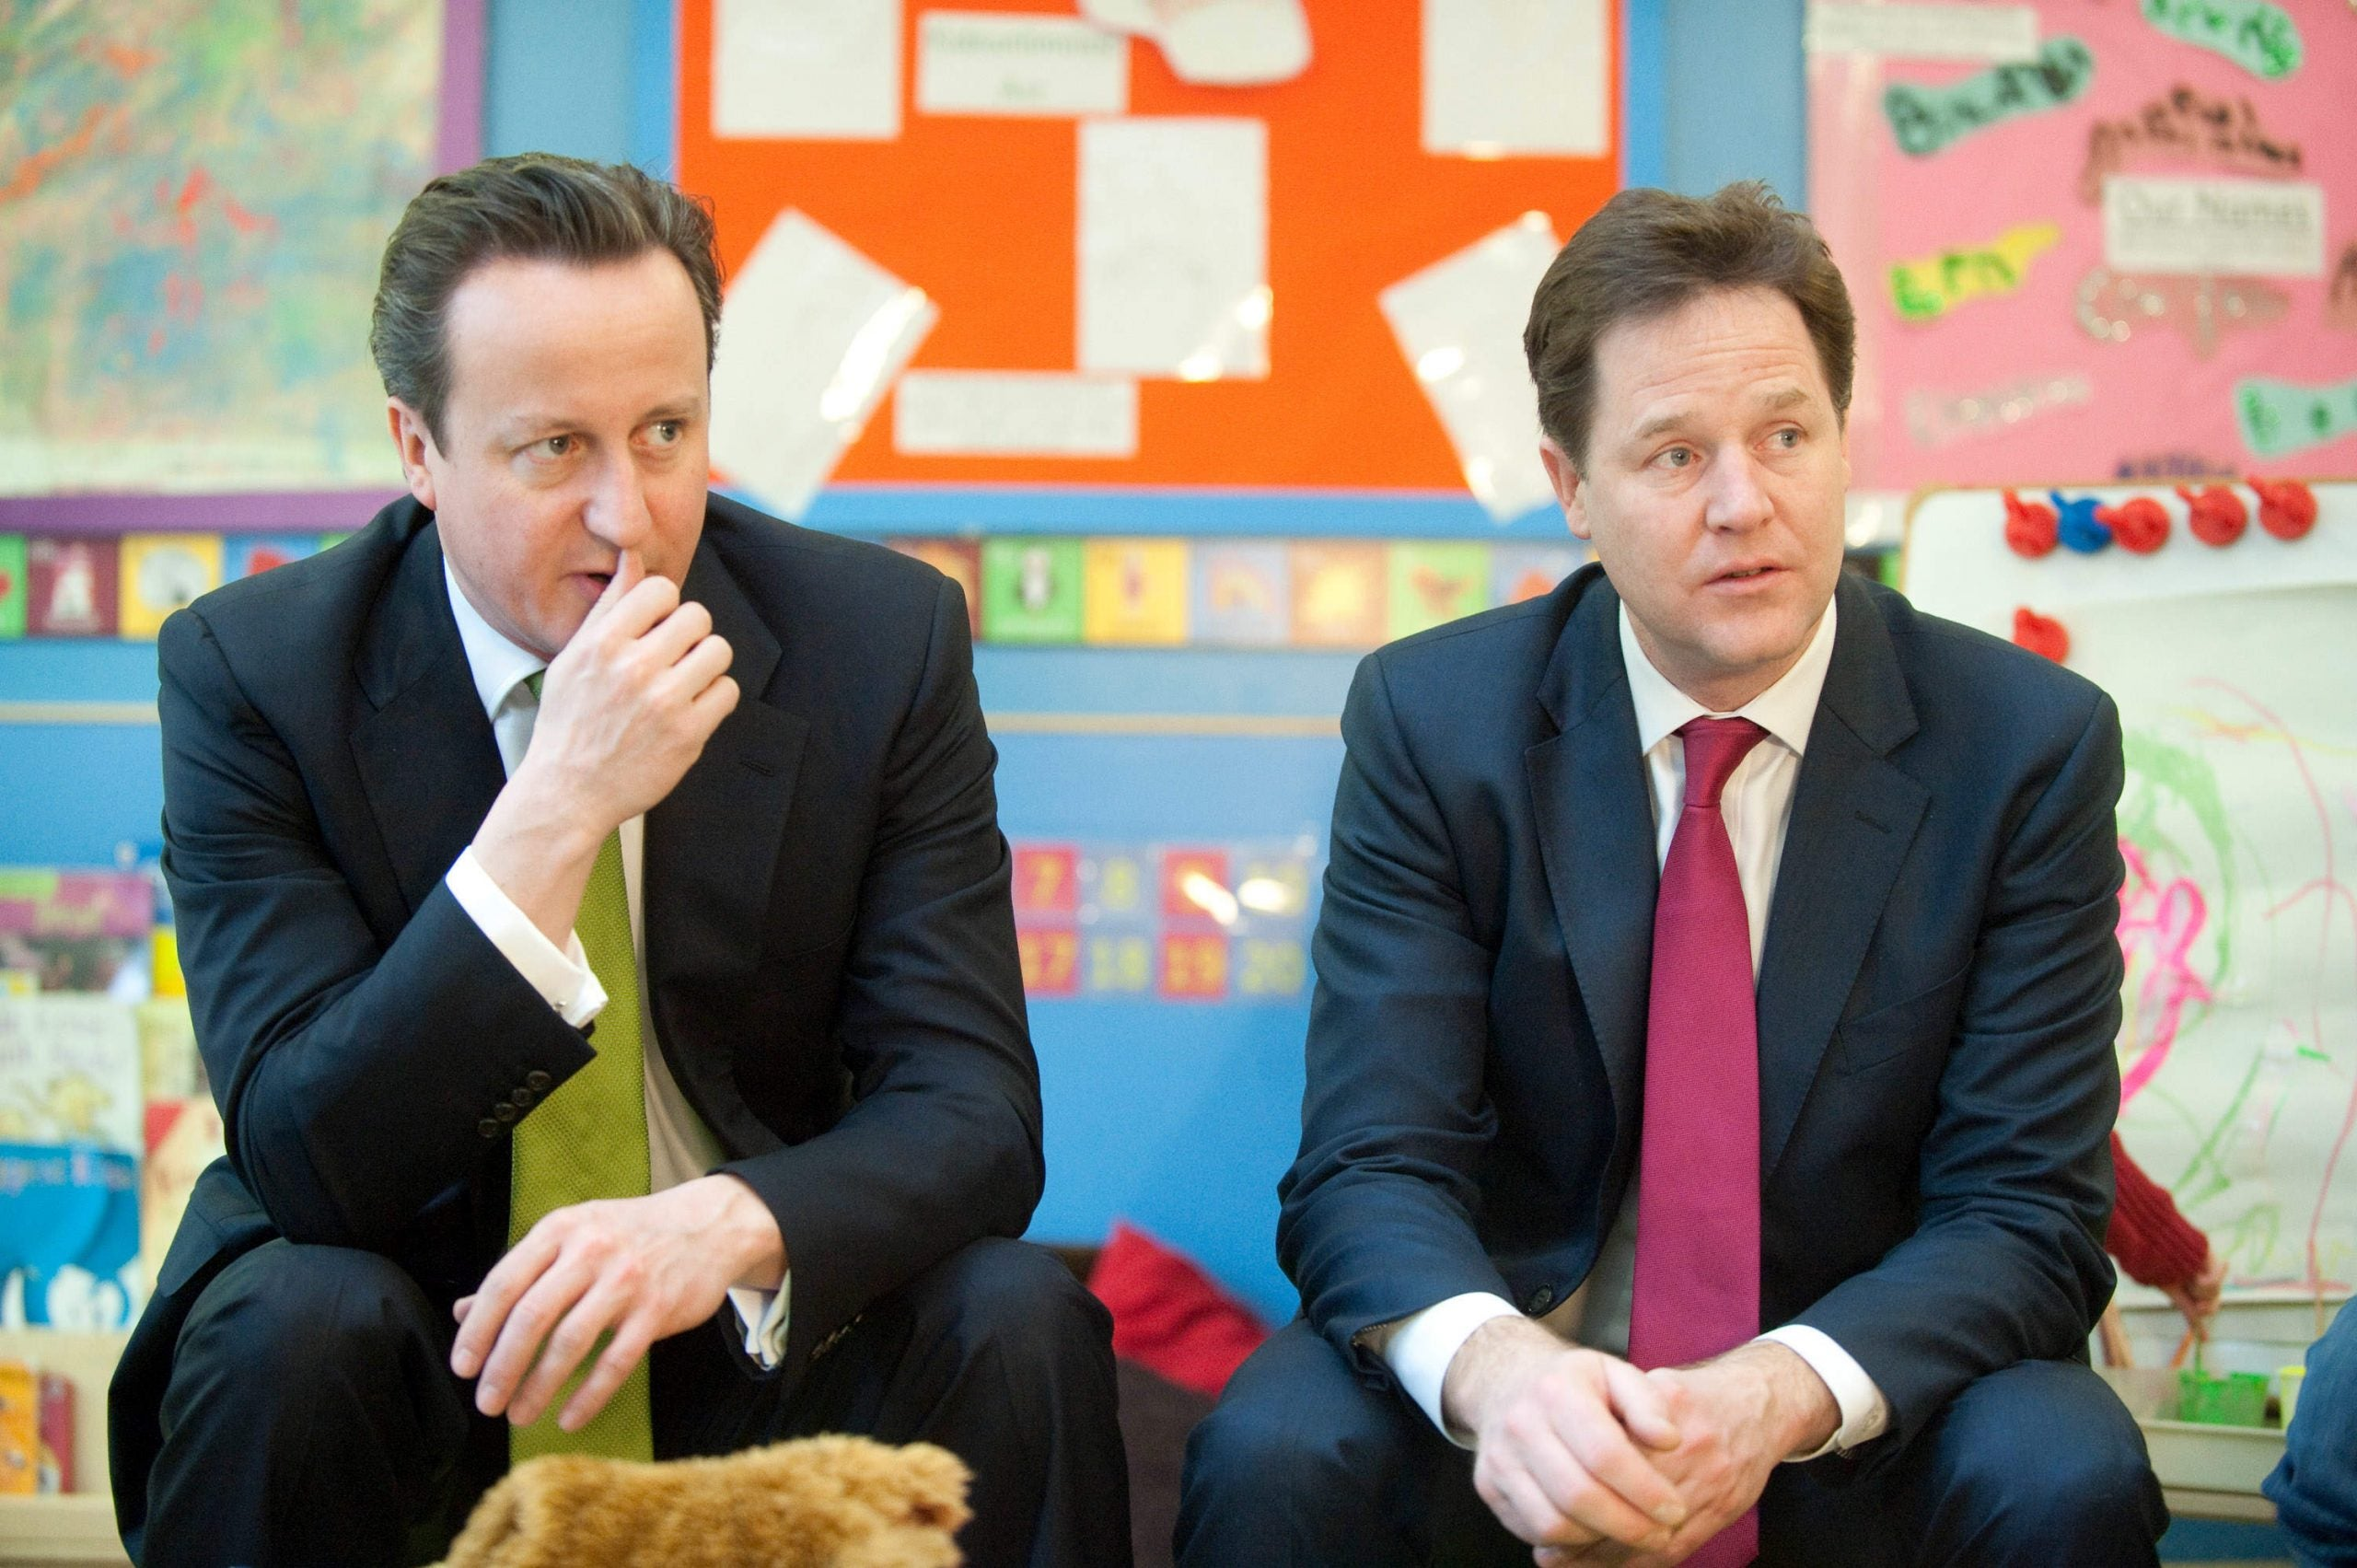 In this together: how the Lib Dems battled to restrain the Tory monster